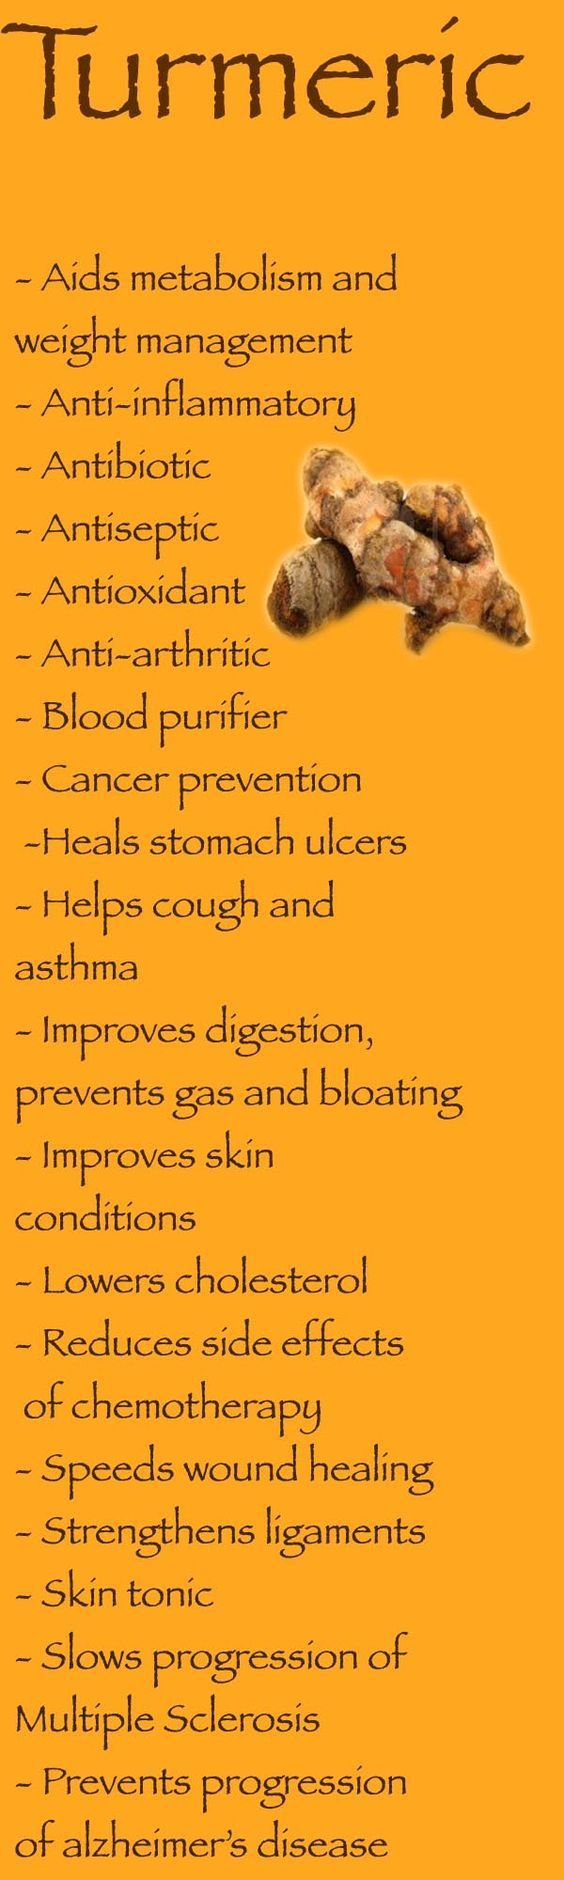 Turmeric Health Benefits. Learn about the healing qualities of alkaline rich Kangen Water. it's antioxidant loaded, hydrogen rich, ionized water that neutralizes free radicals that cause oxidative stress which can lead to disease such as cancer. Many medi